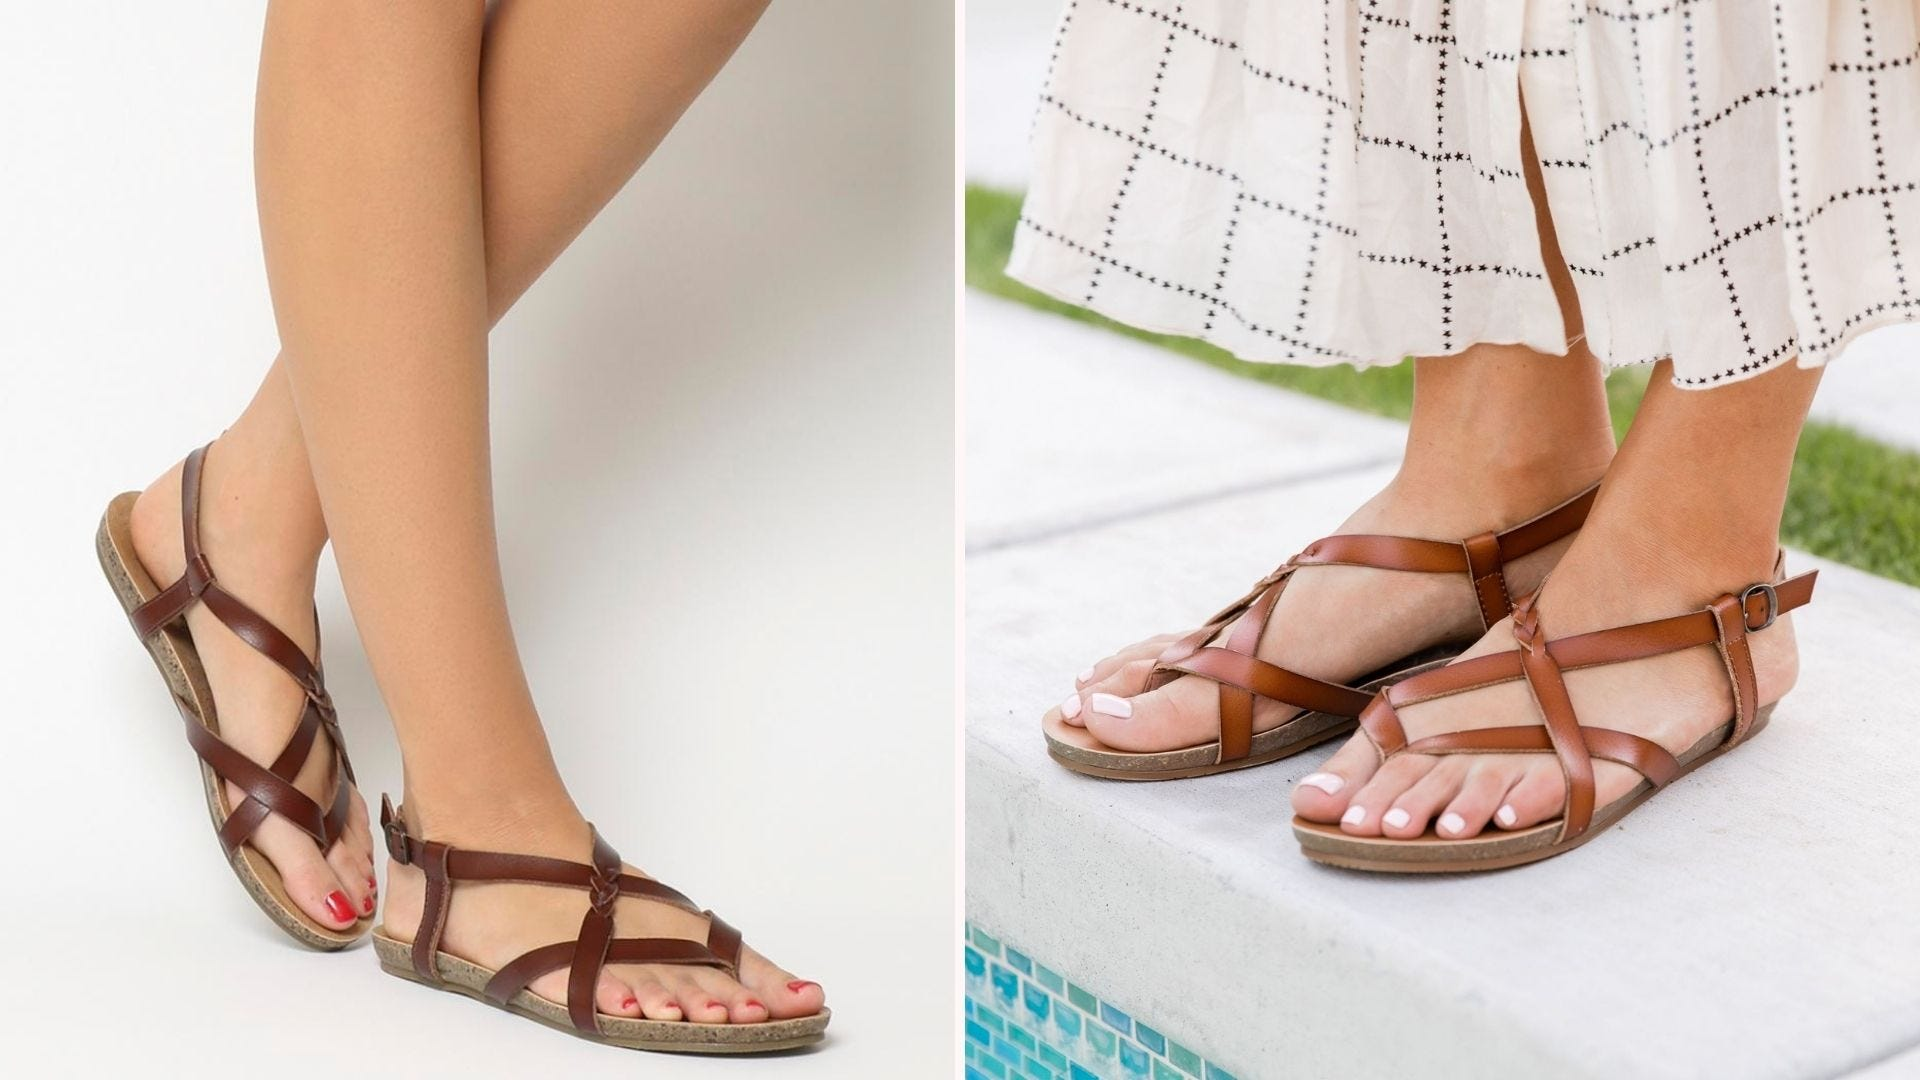 A pair of feet wearing brown strappy sandals; a woman in a skirt wearing brown strappy sandals